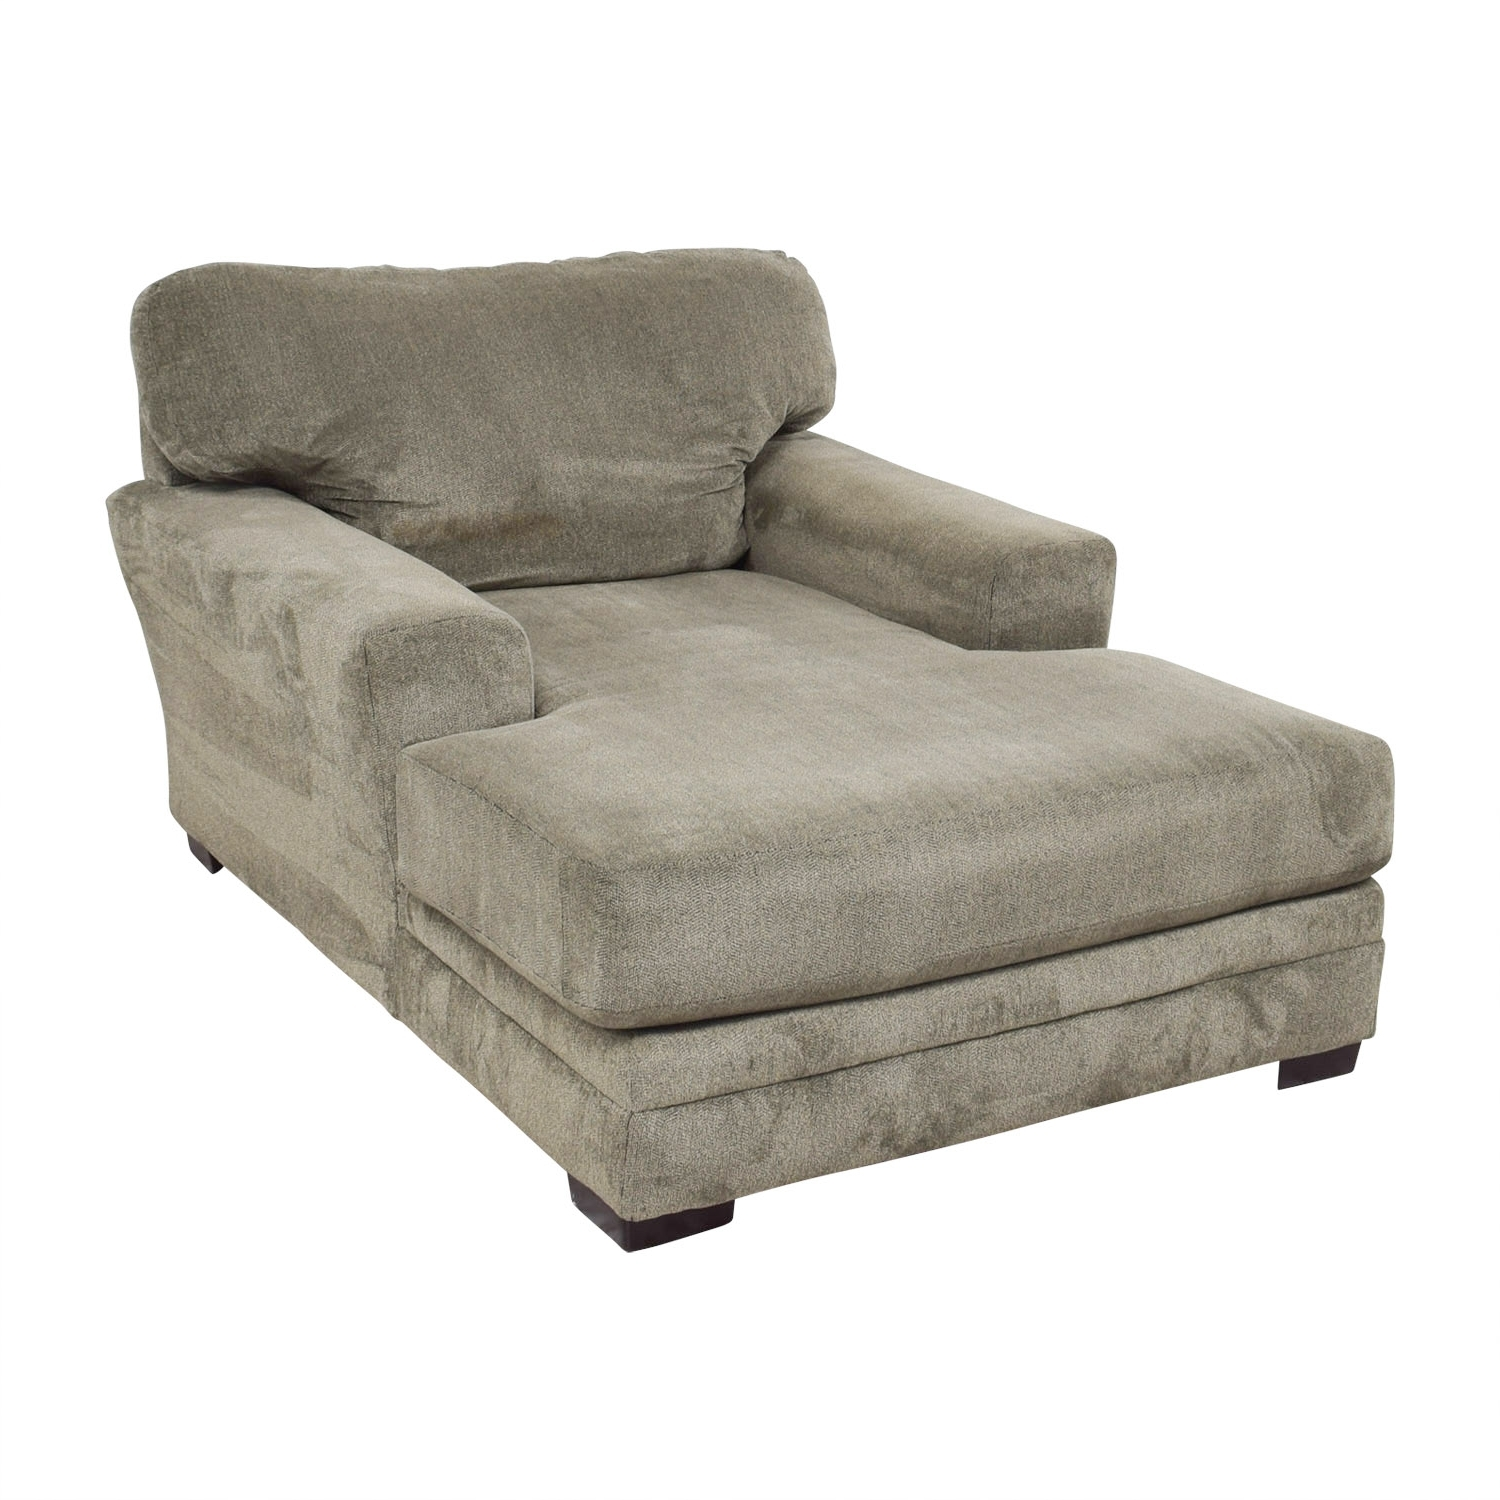 [%81% Off – Bob's Furniture Bob's Furniture Grey Chaise Lounge / Sofas Intended For Most Recent Grey Chaises|Grey Chaises Throughout Trendy 81% Off – Bob's Furniture Bob's Furniture Grey Chaise Lounge / Sofas|Best And Newest Grey Chaises Regarding 81% Off – Bob's Furniture Bob's Furniture Grey Chaise Lounge / Sofas|Well Known 81% Off – Bob's Furniture Bob's Furniture Grey Chaise Lounge / Sofas In Grey Chaises%] (View 5 of 15)